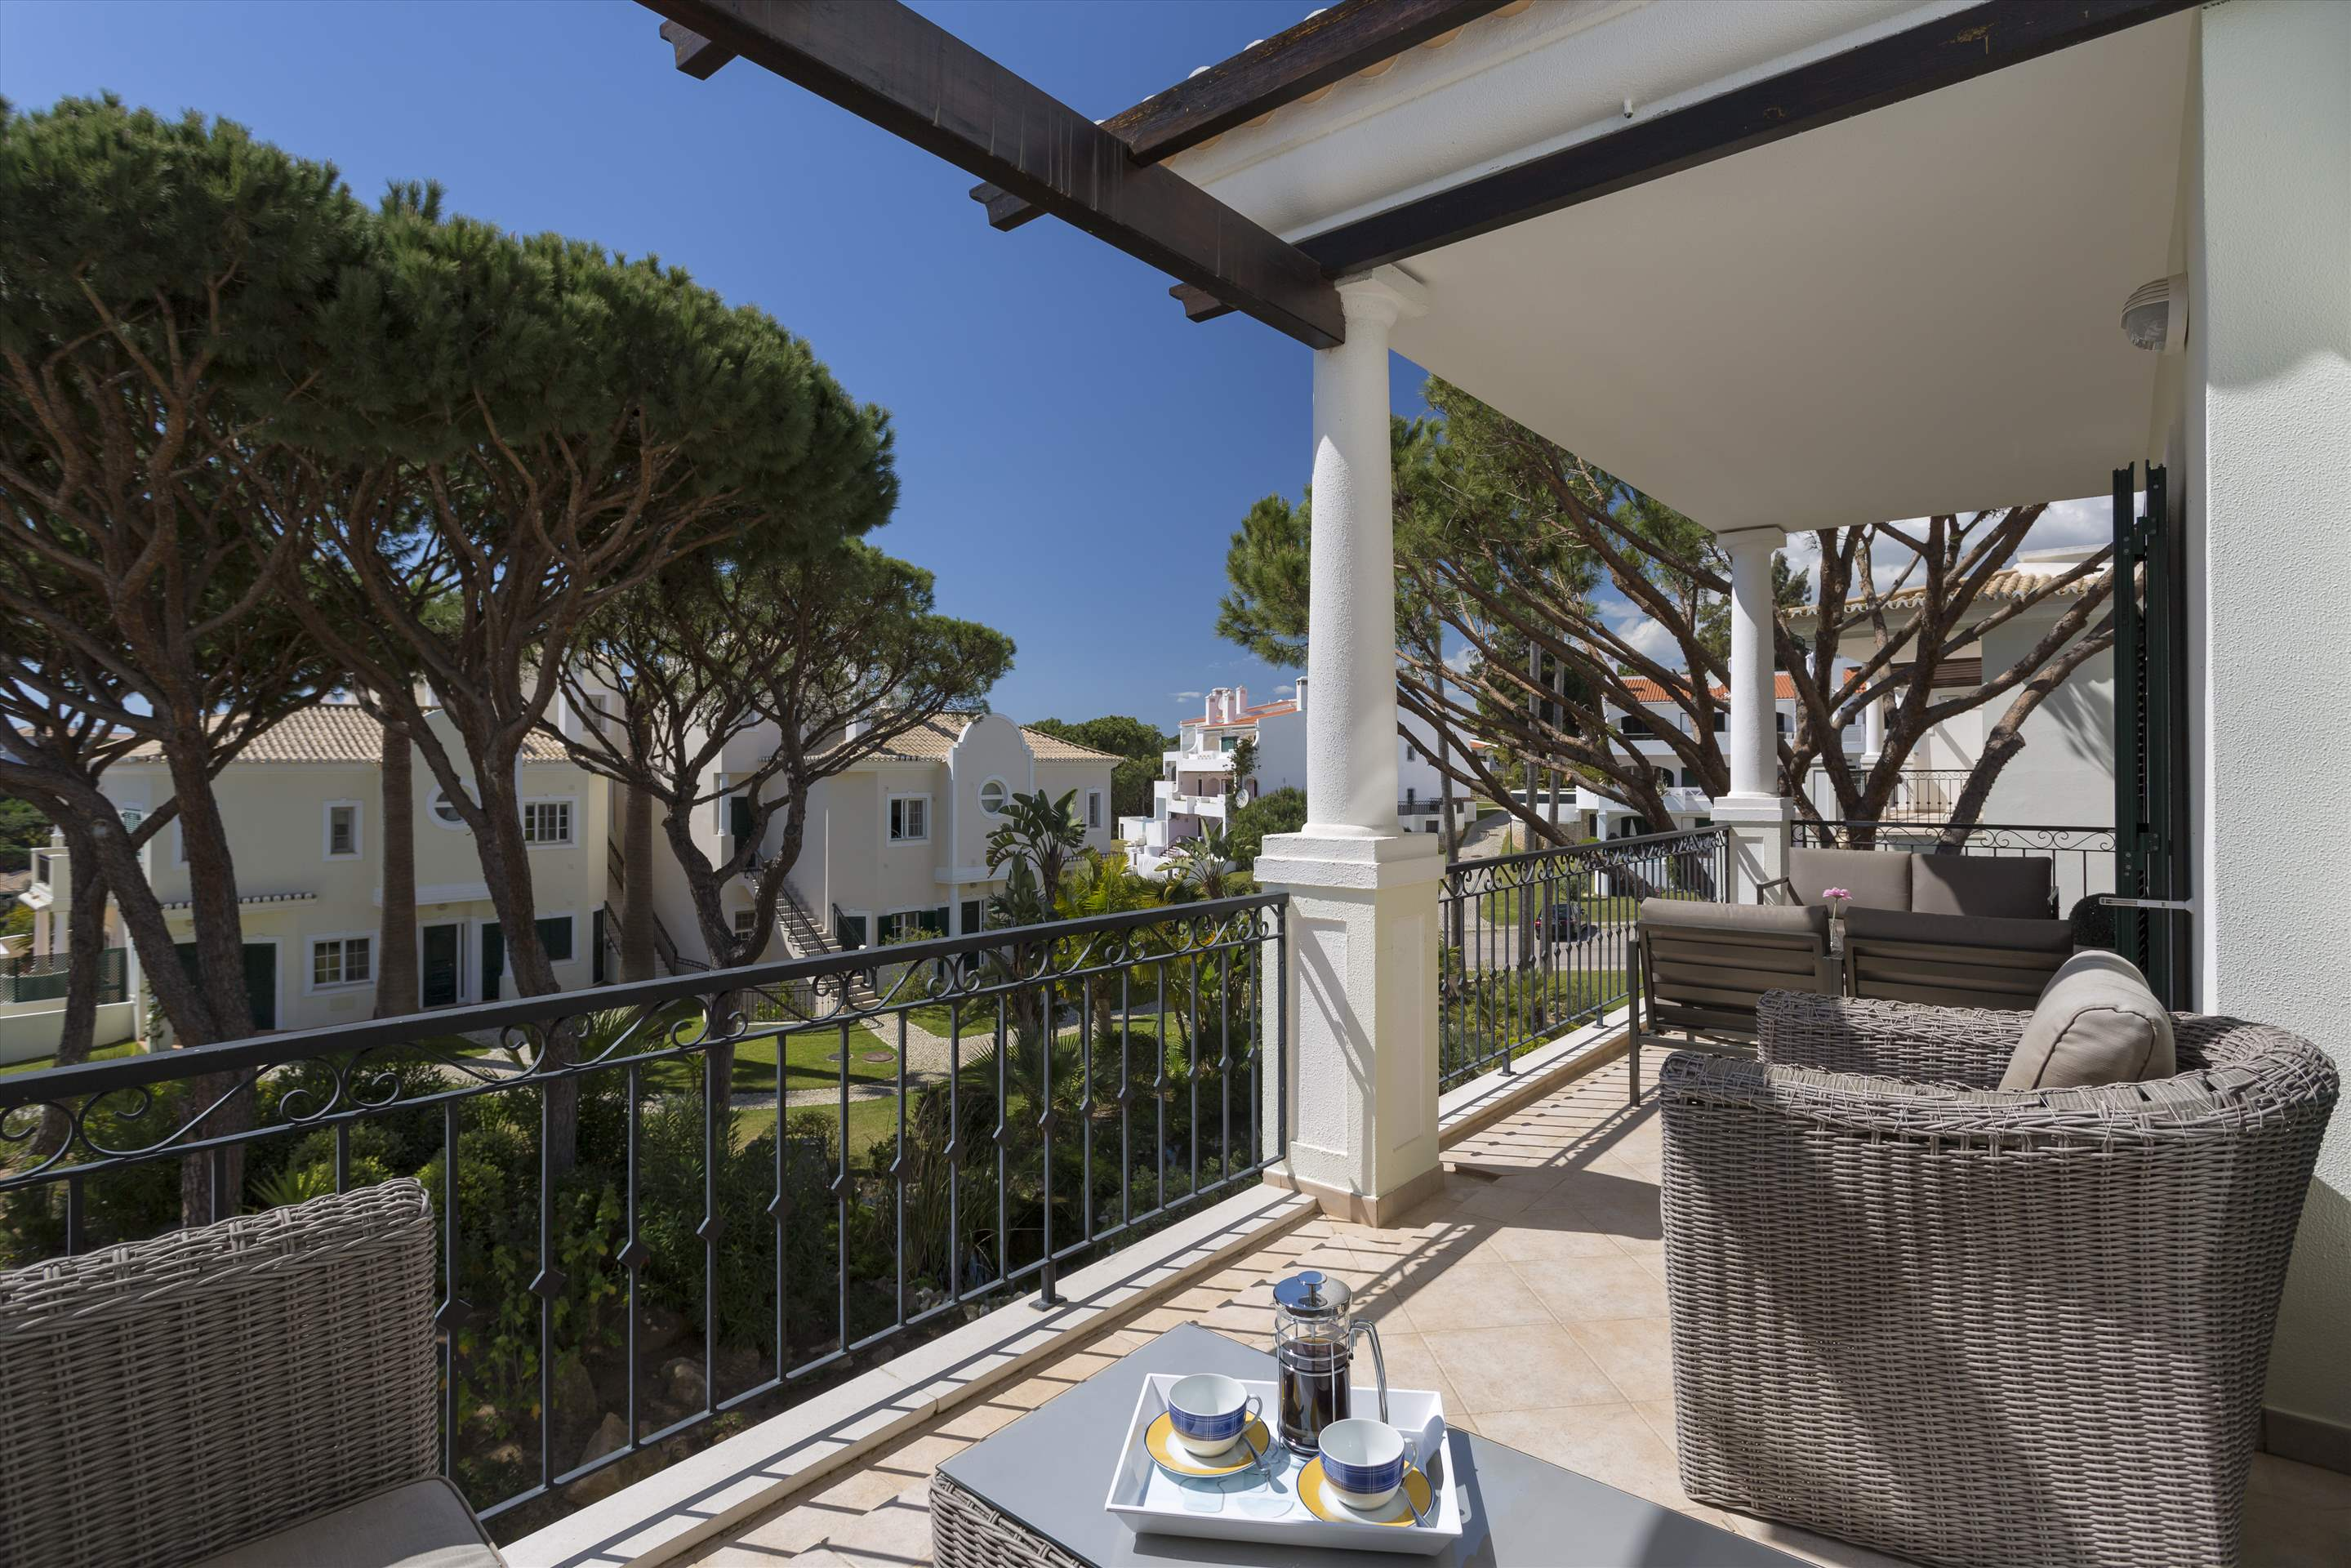 Apartment Jacinda, 2 bedroom apartment in Vale do Lobo, Algarve Photo #8